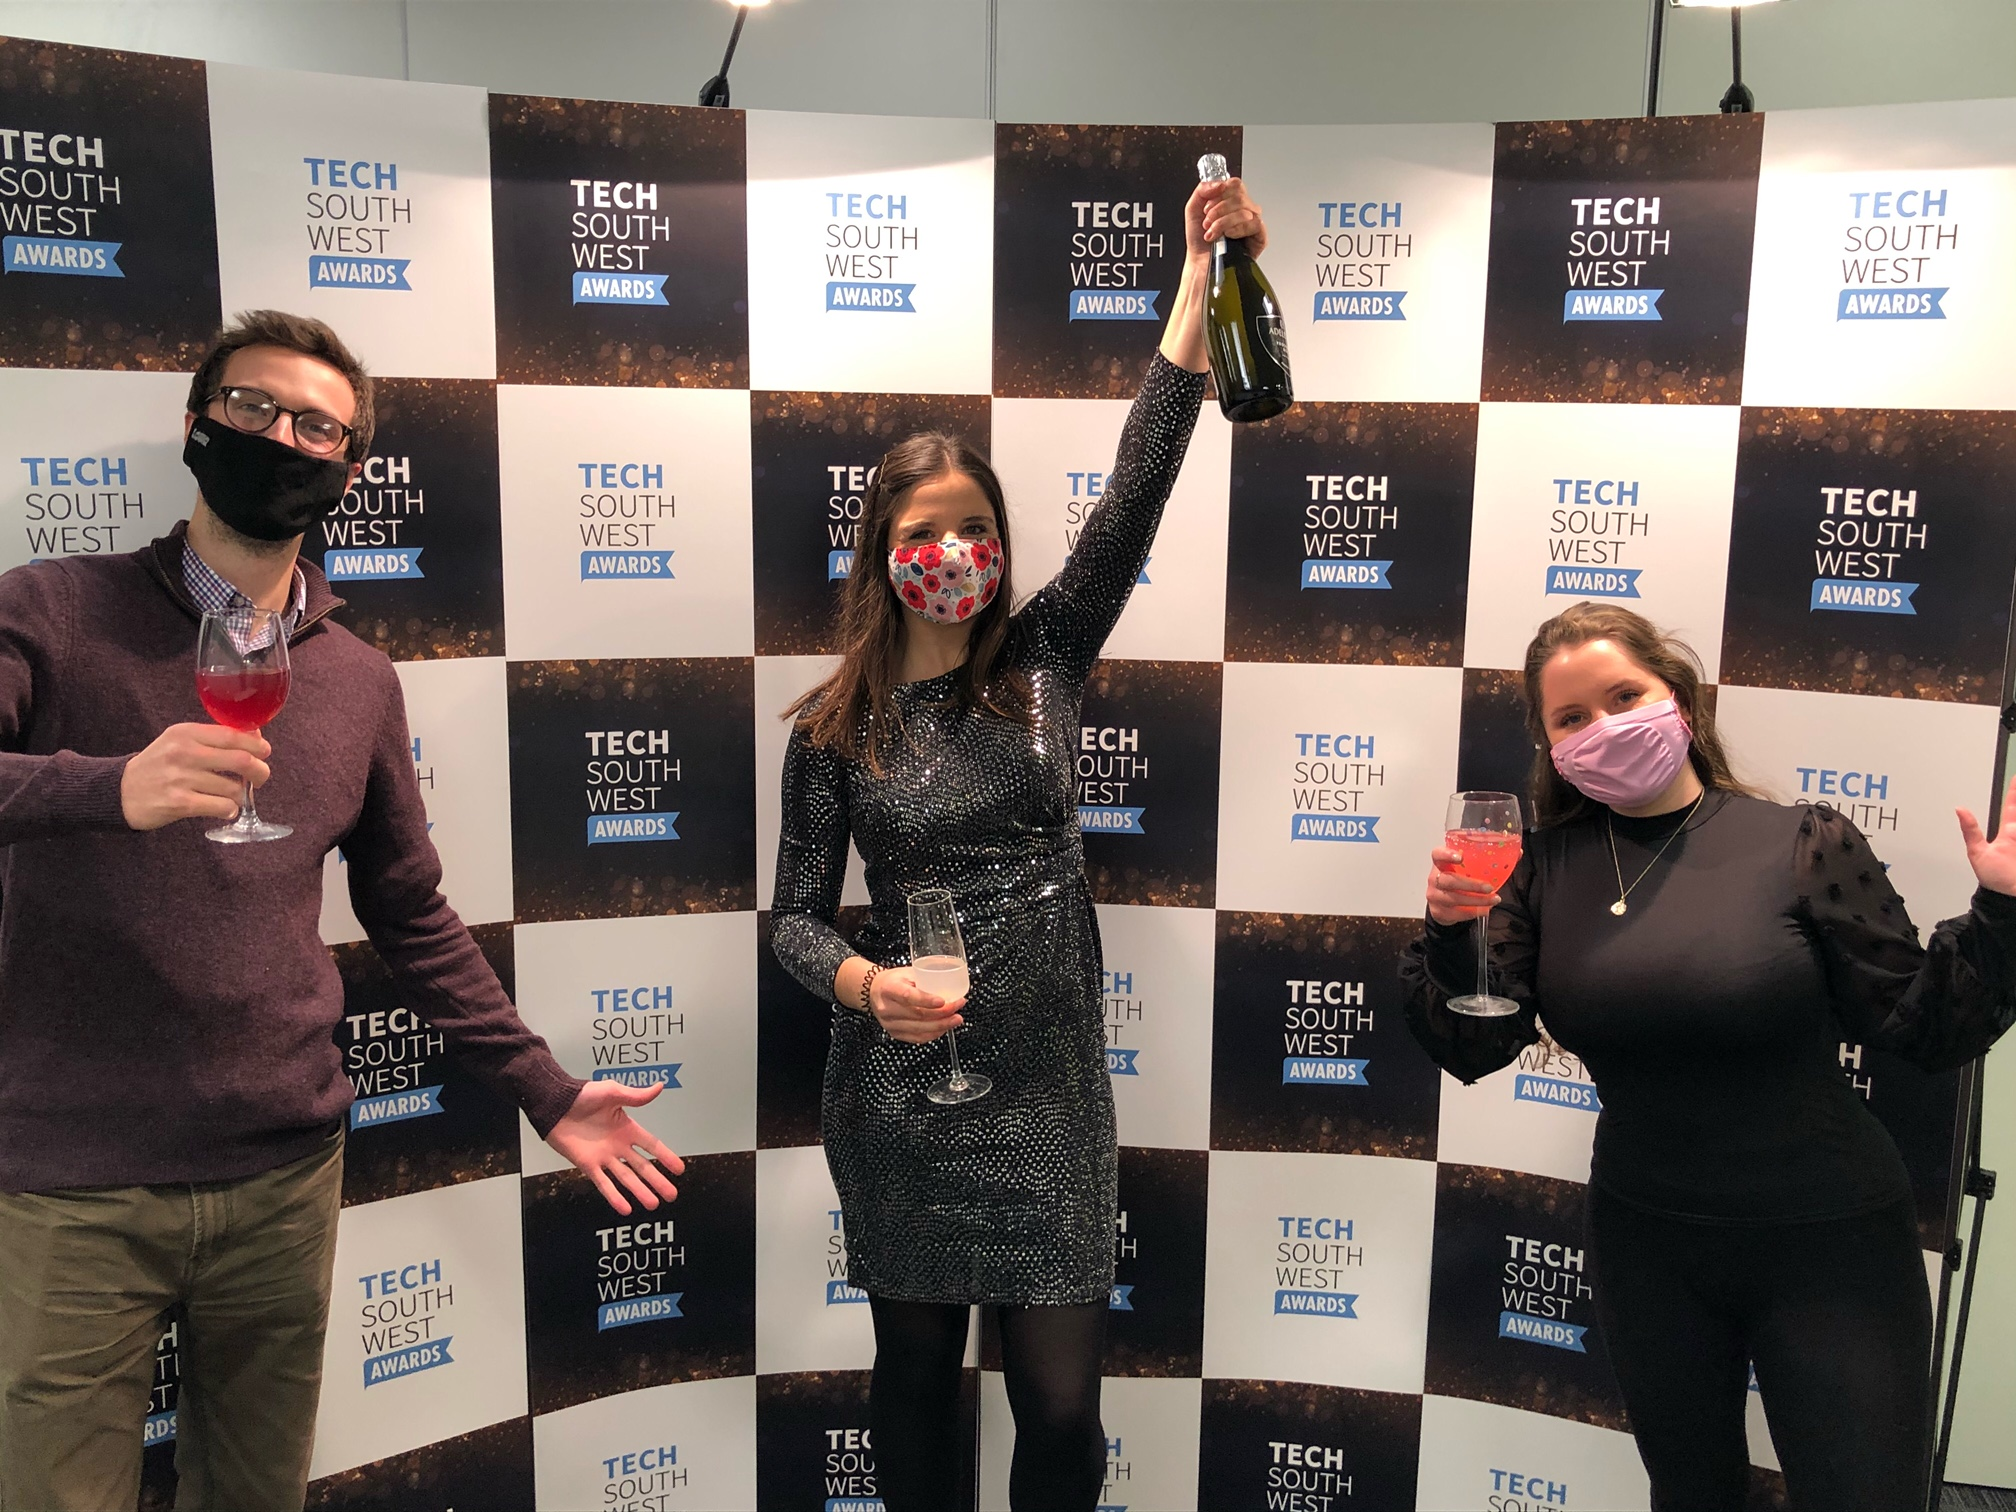 A look back at the Tech South West Awards 2020